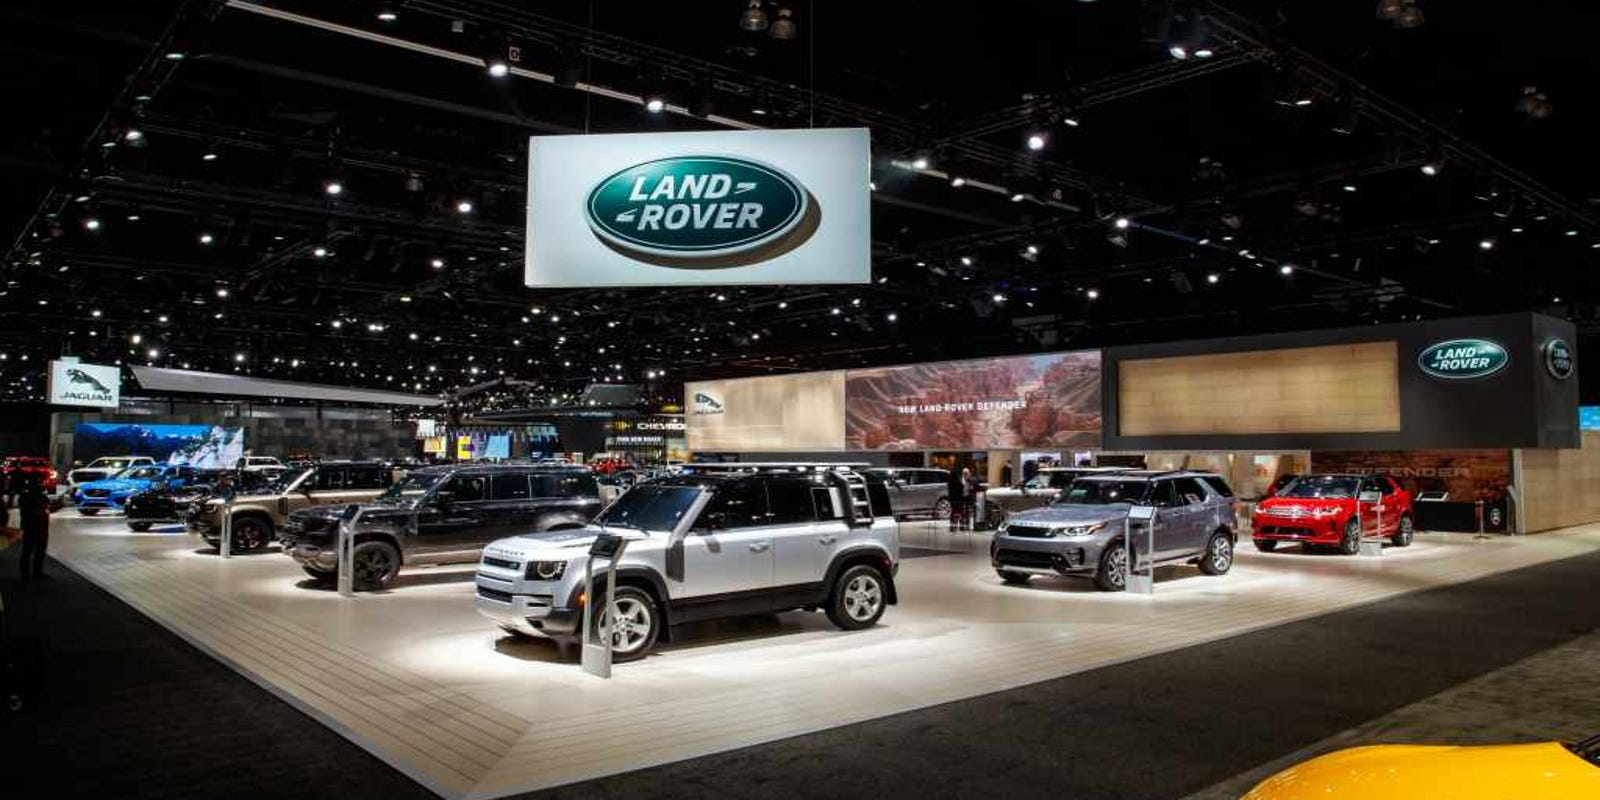 Jaguar to transition to all electric vehicles, Land Rover to go majority electric